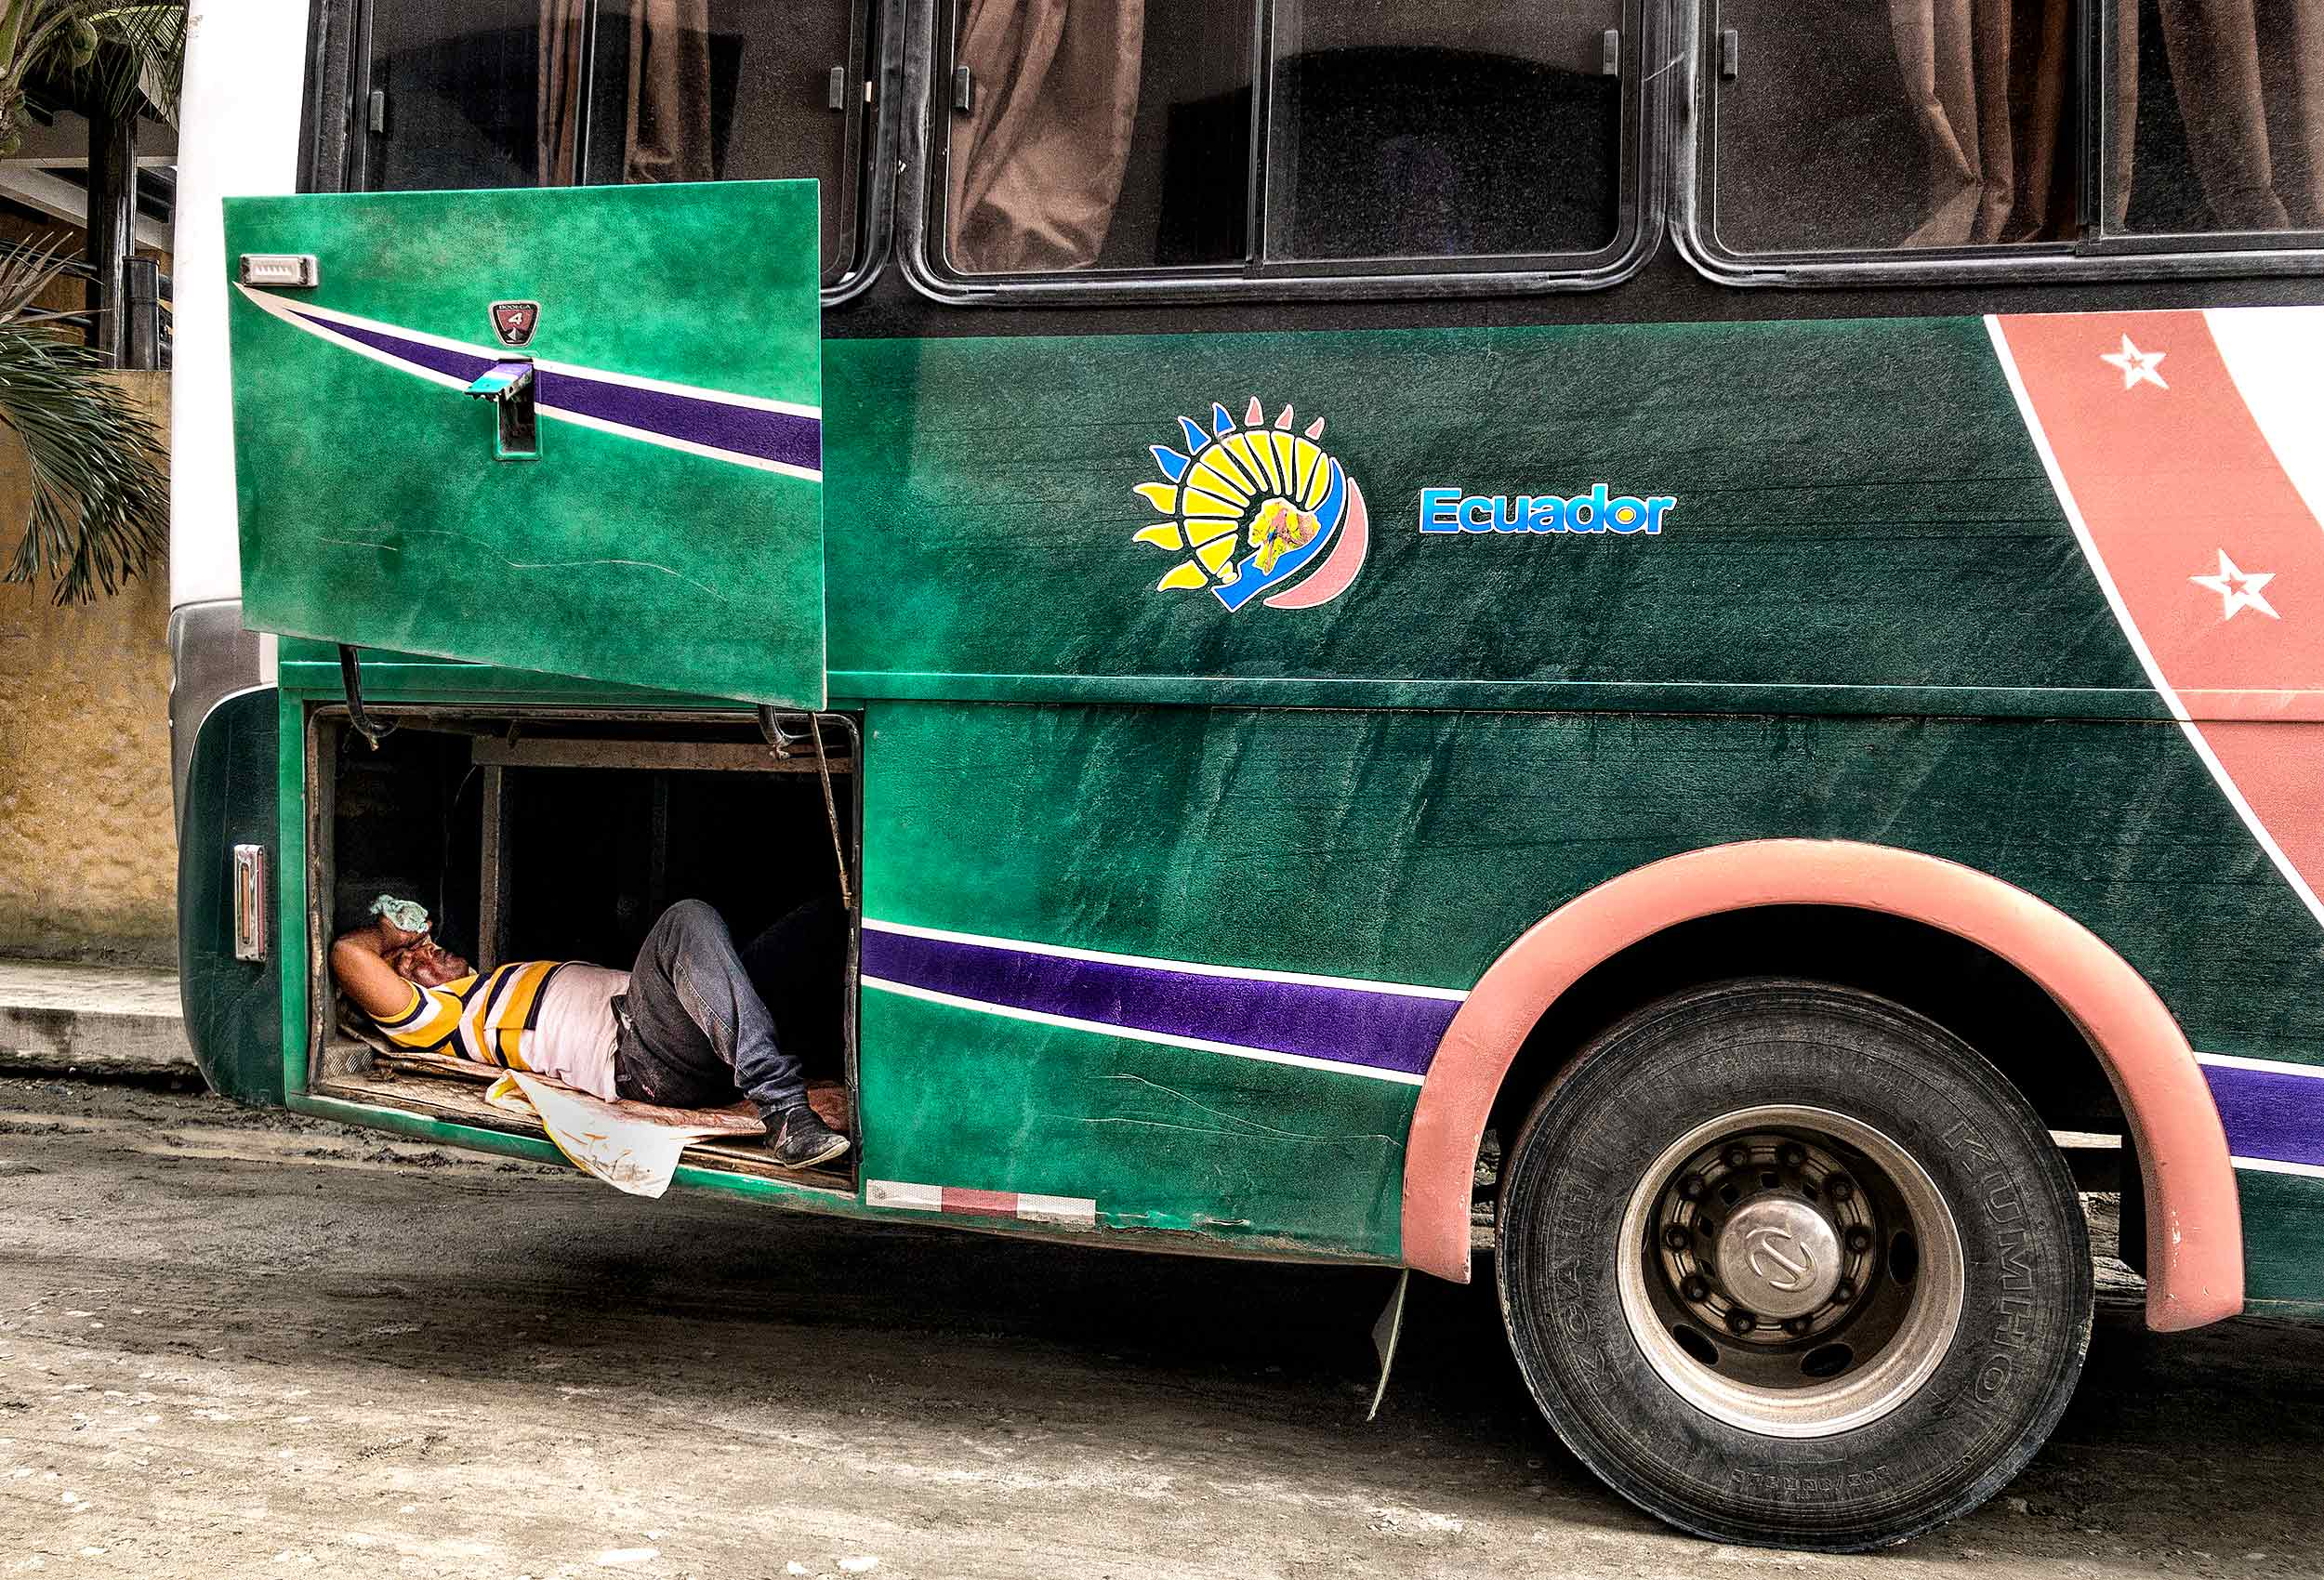 an-ecuadorian-bus-driver-sleeps-in-the-back-of-his-bus-compartment